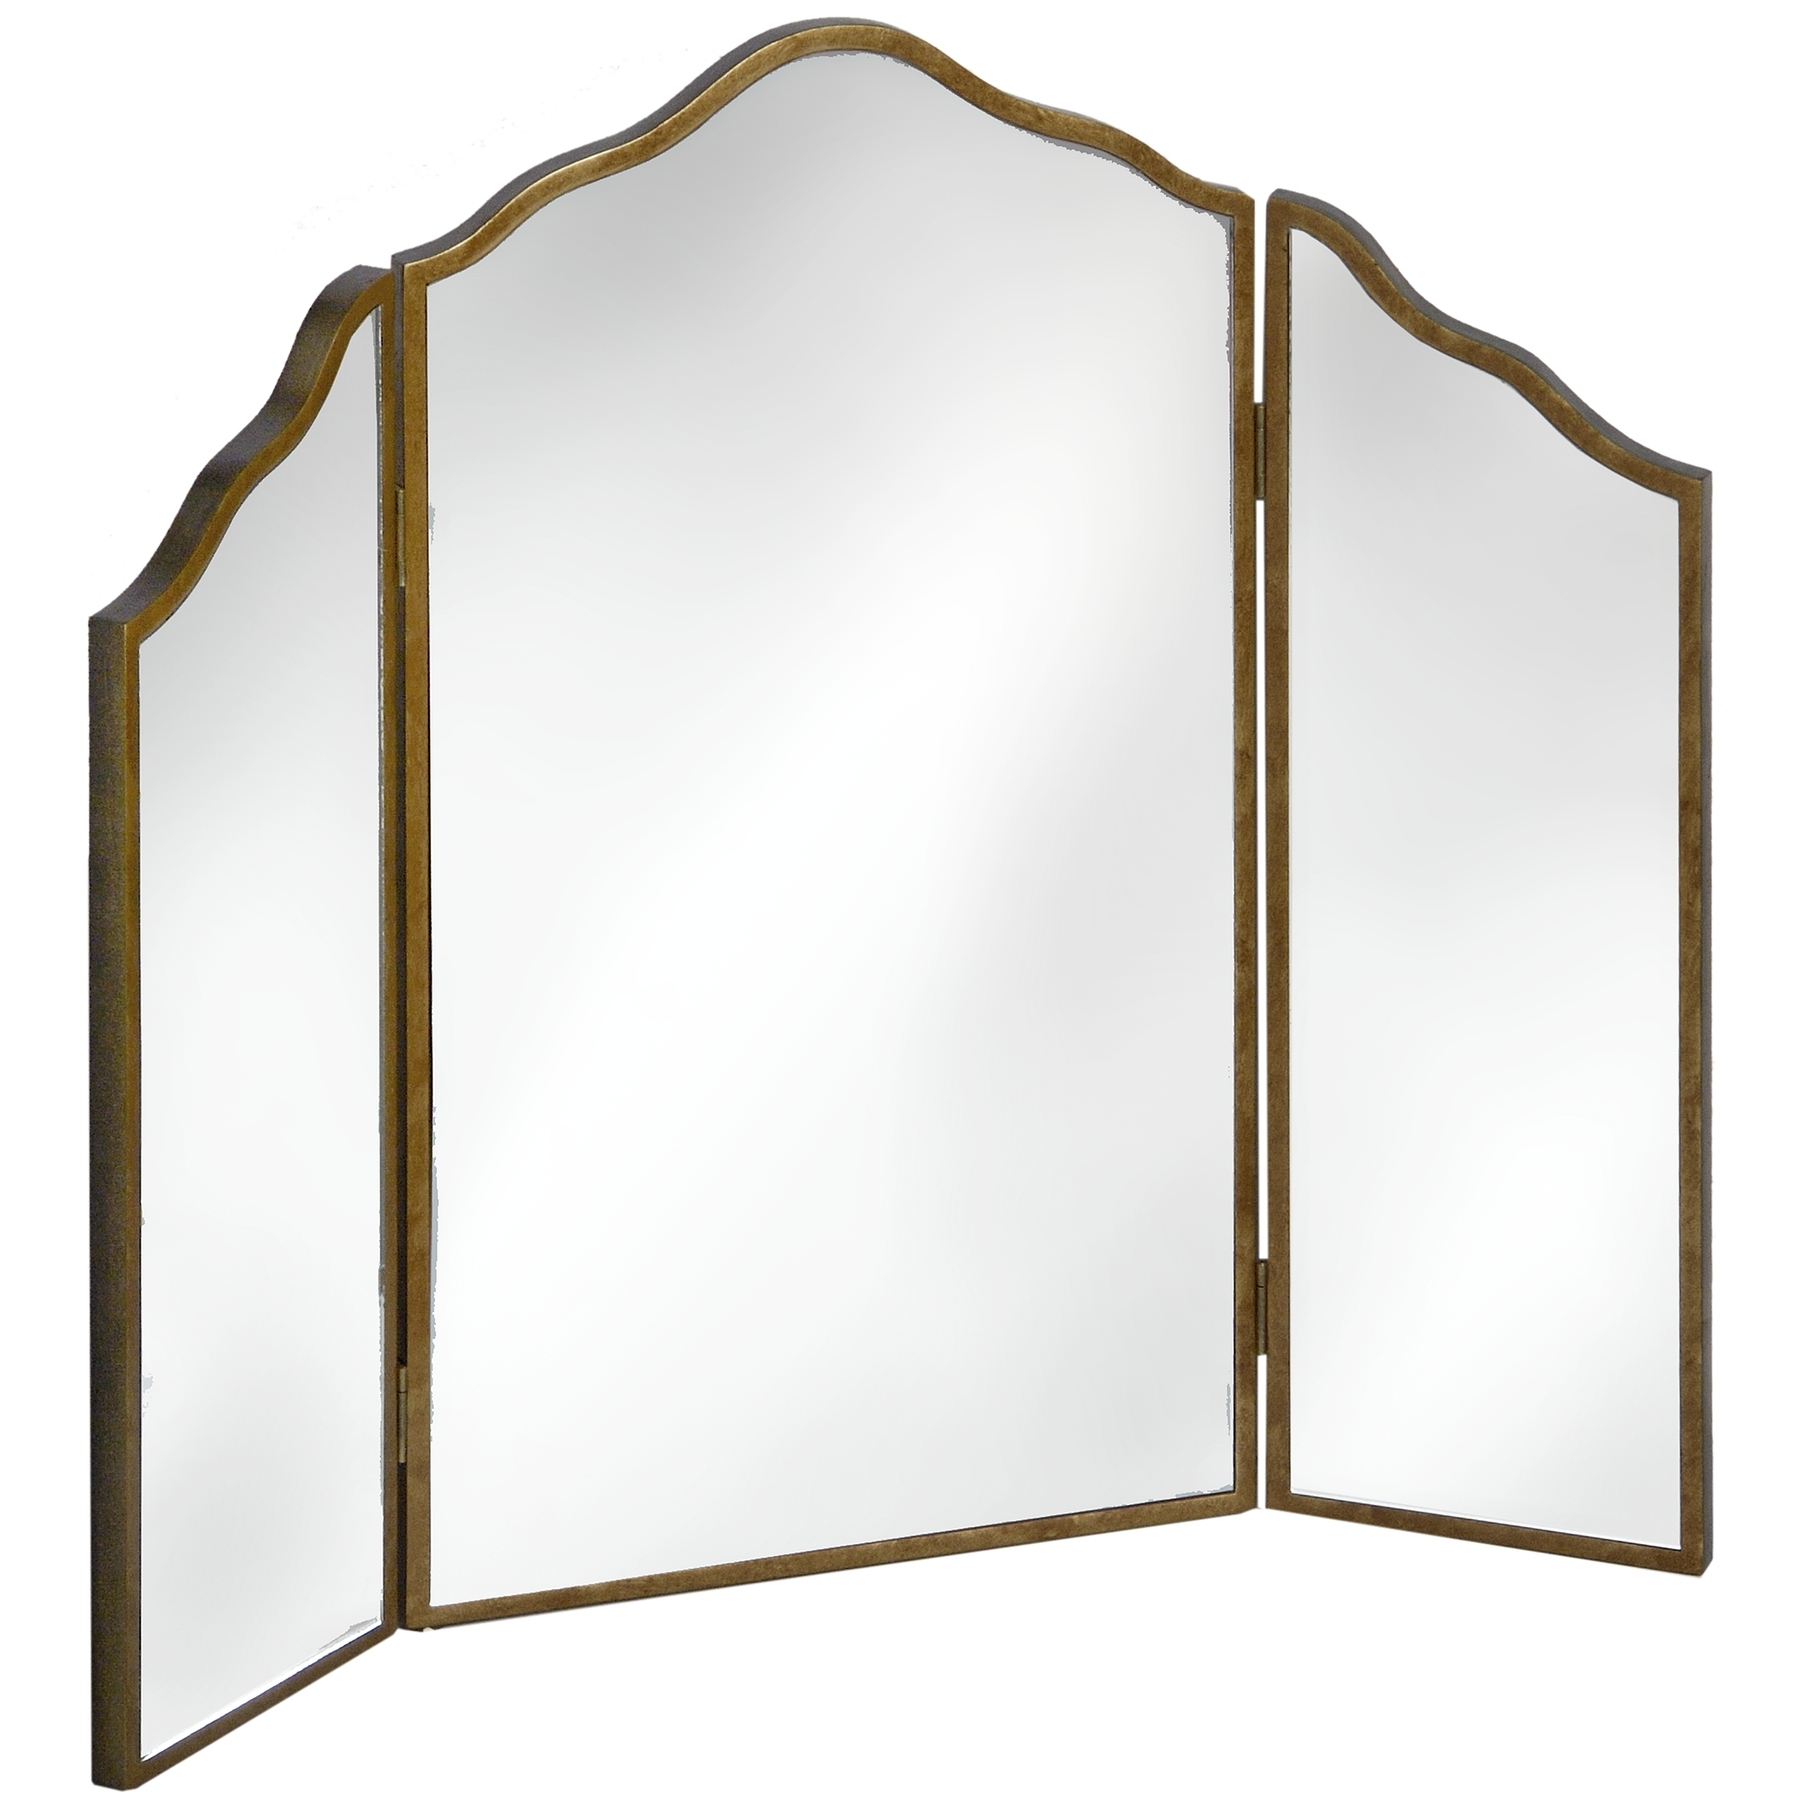 3 Way Mirror Dressing Table House Pinterest Dressing Tables Inside Venetian Dressing Table Mirrors (Image 1 of 15)